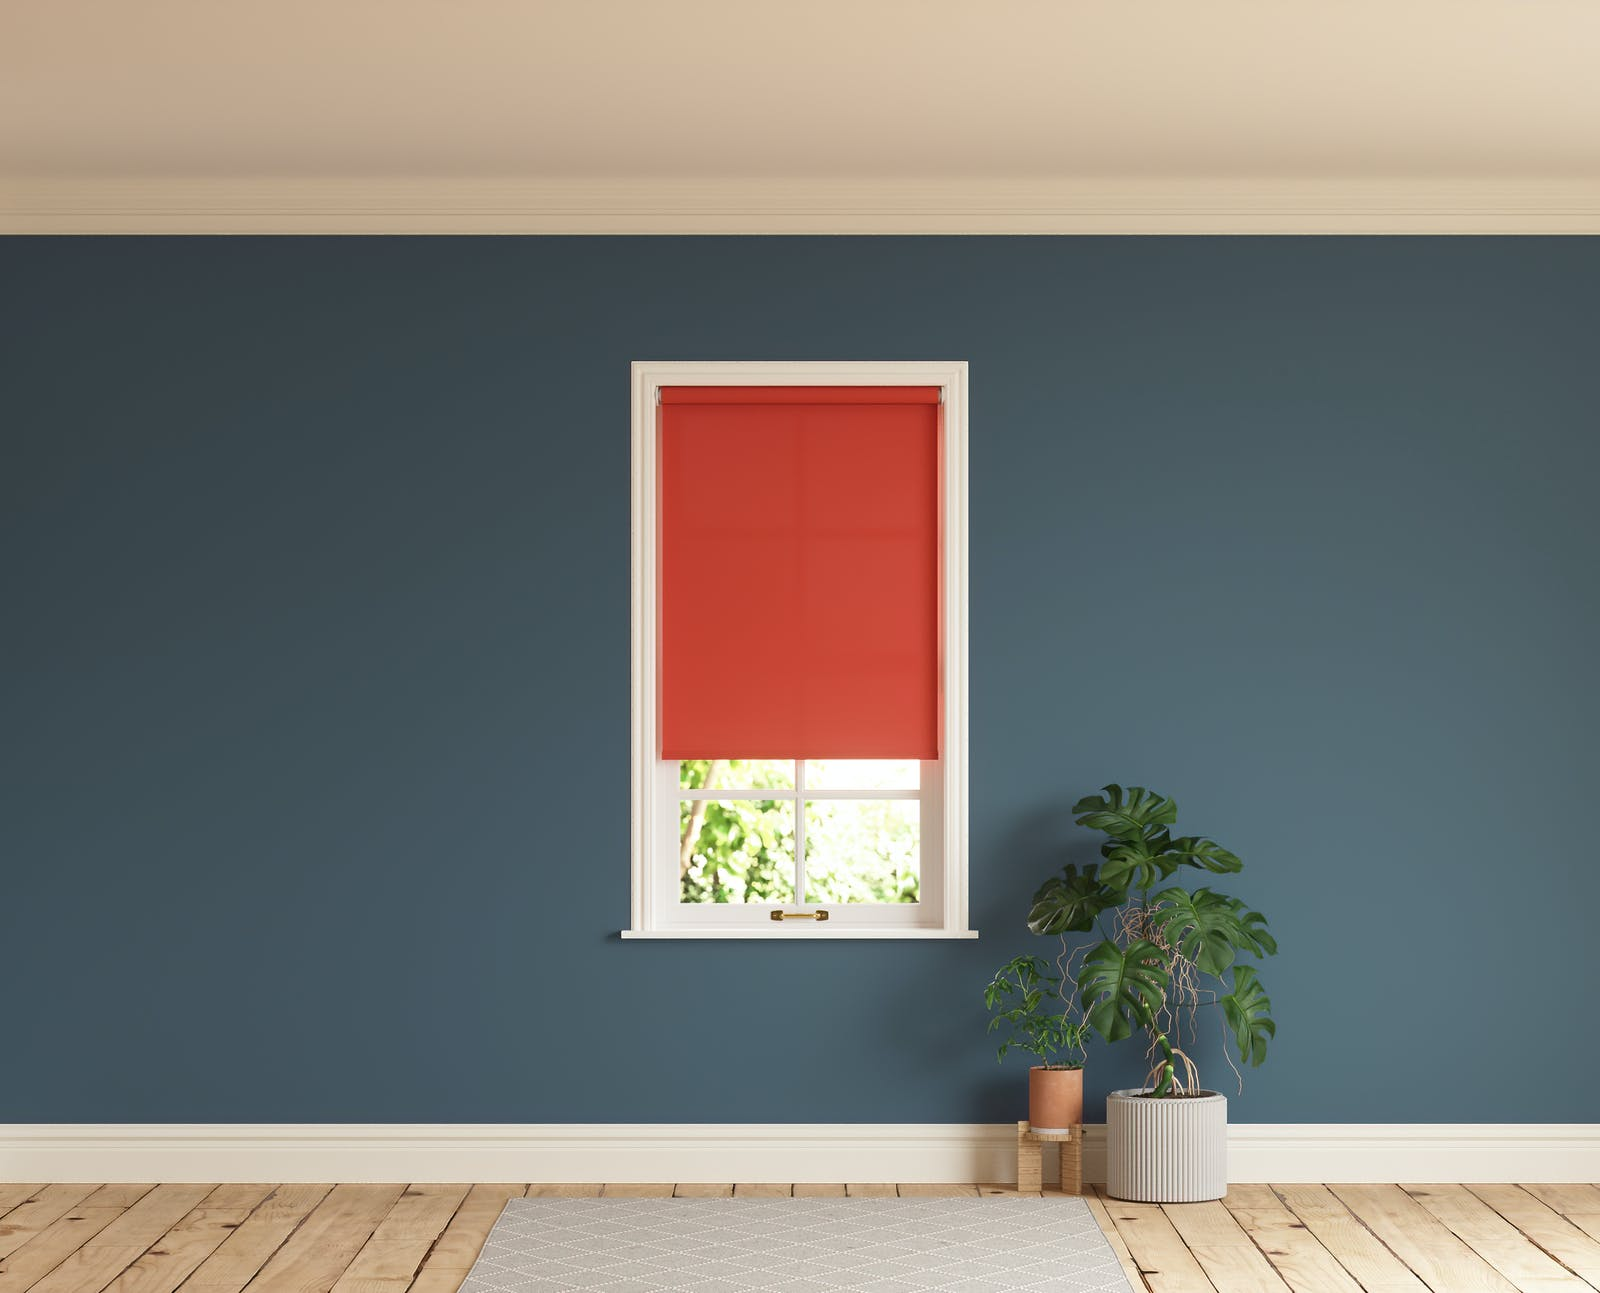 Room with walls painted in Lick Blue 07 and Red 02 roller blinds